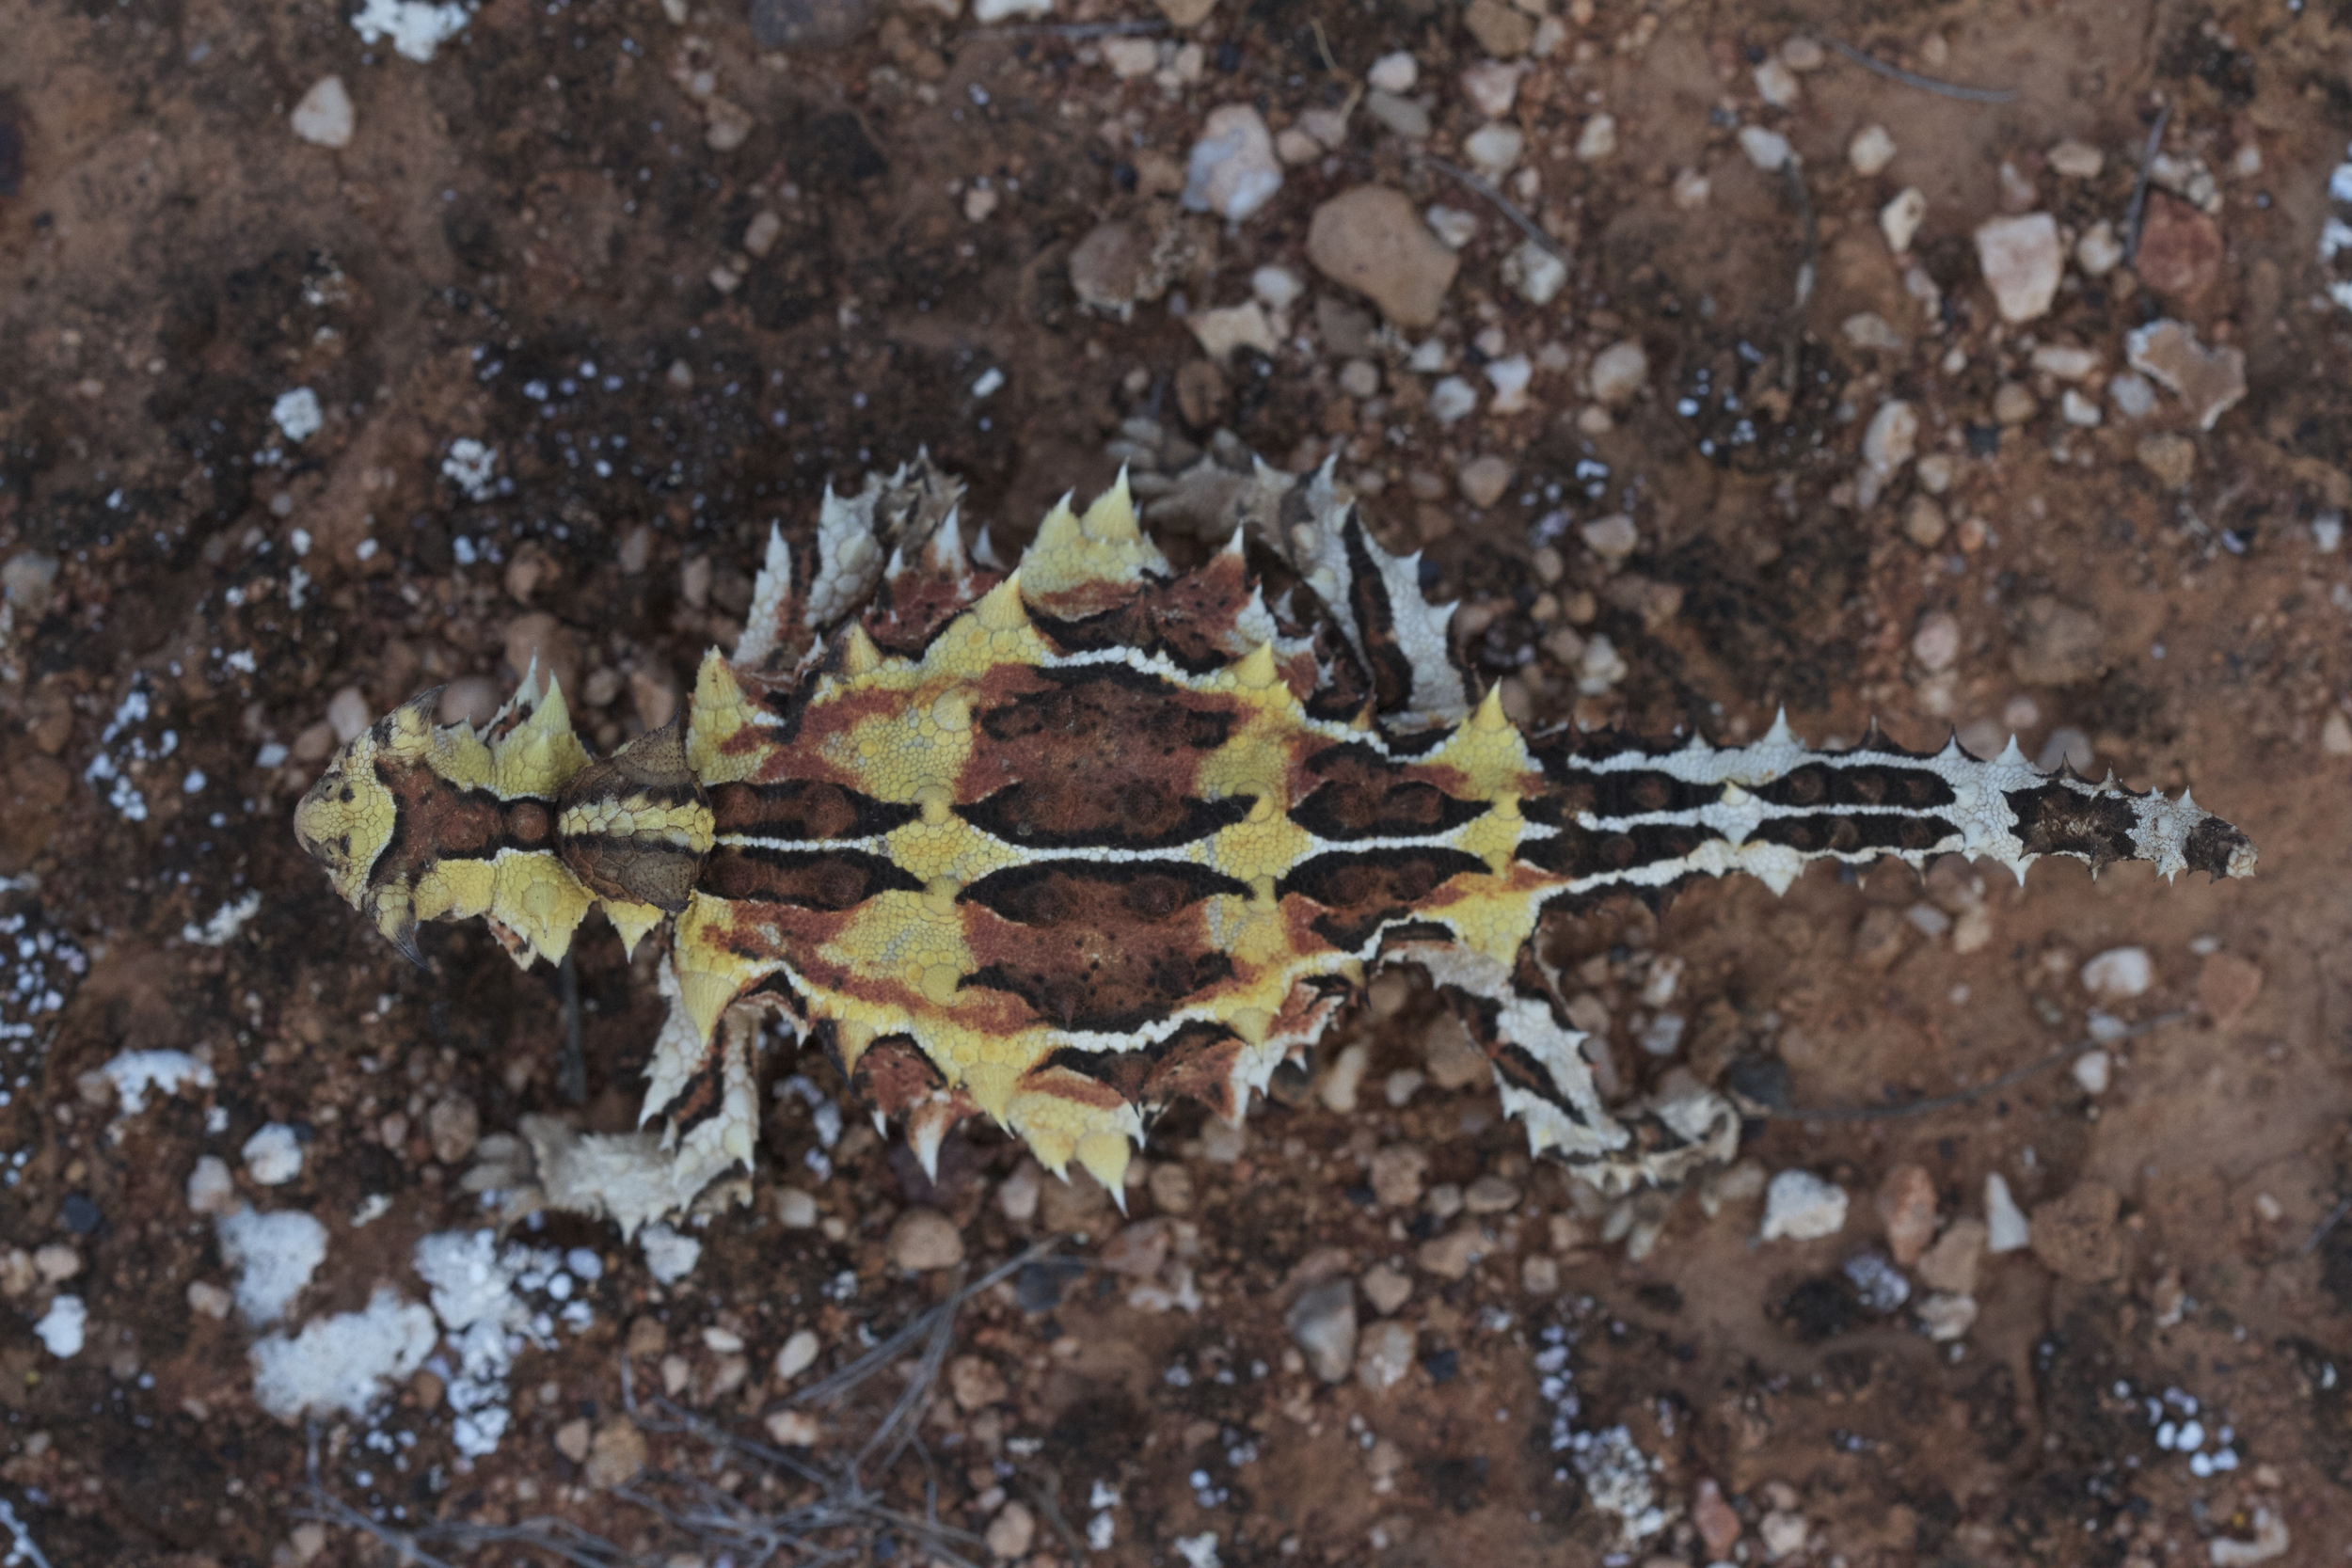 Thorny devils are spectacularly coloured and patterned. Thurlga Station, South Australia, 2012. Photo by Angus Kennedy.